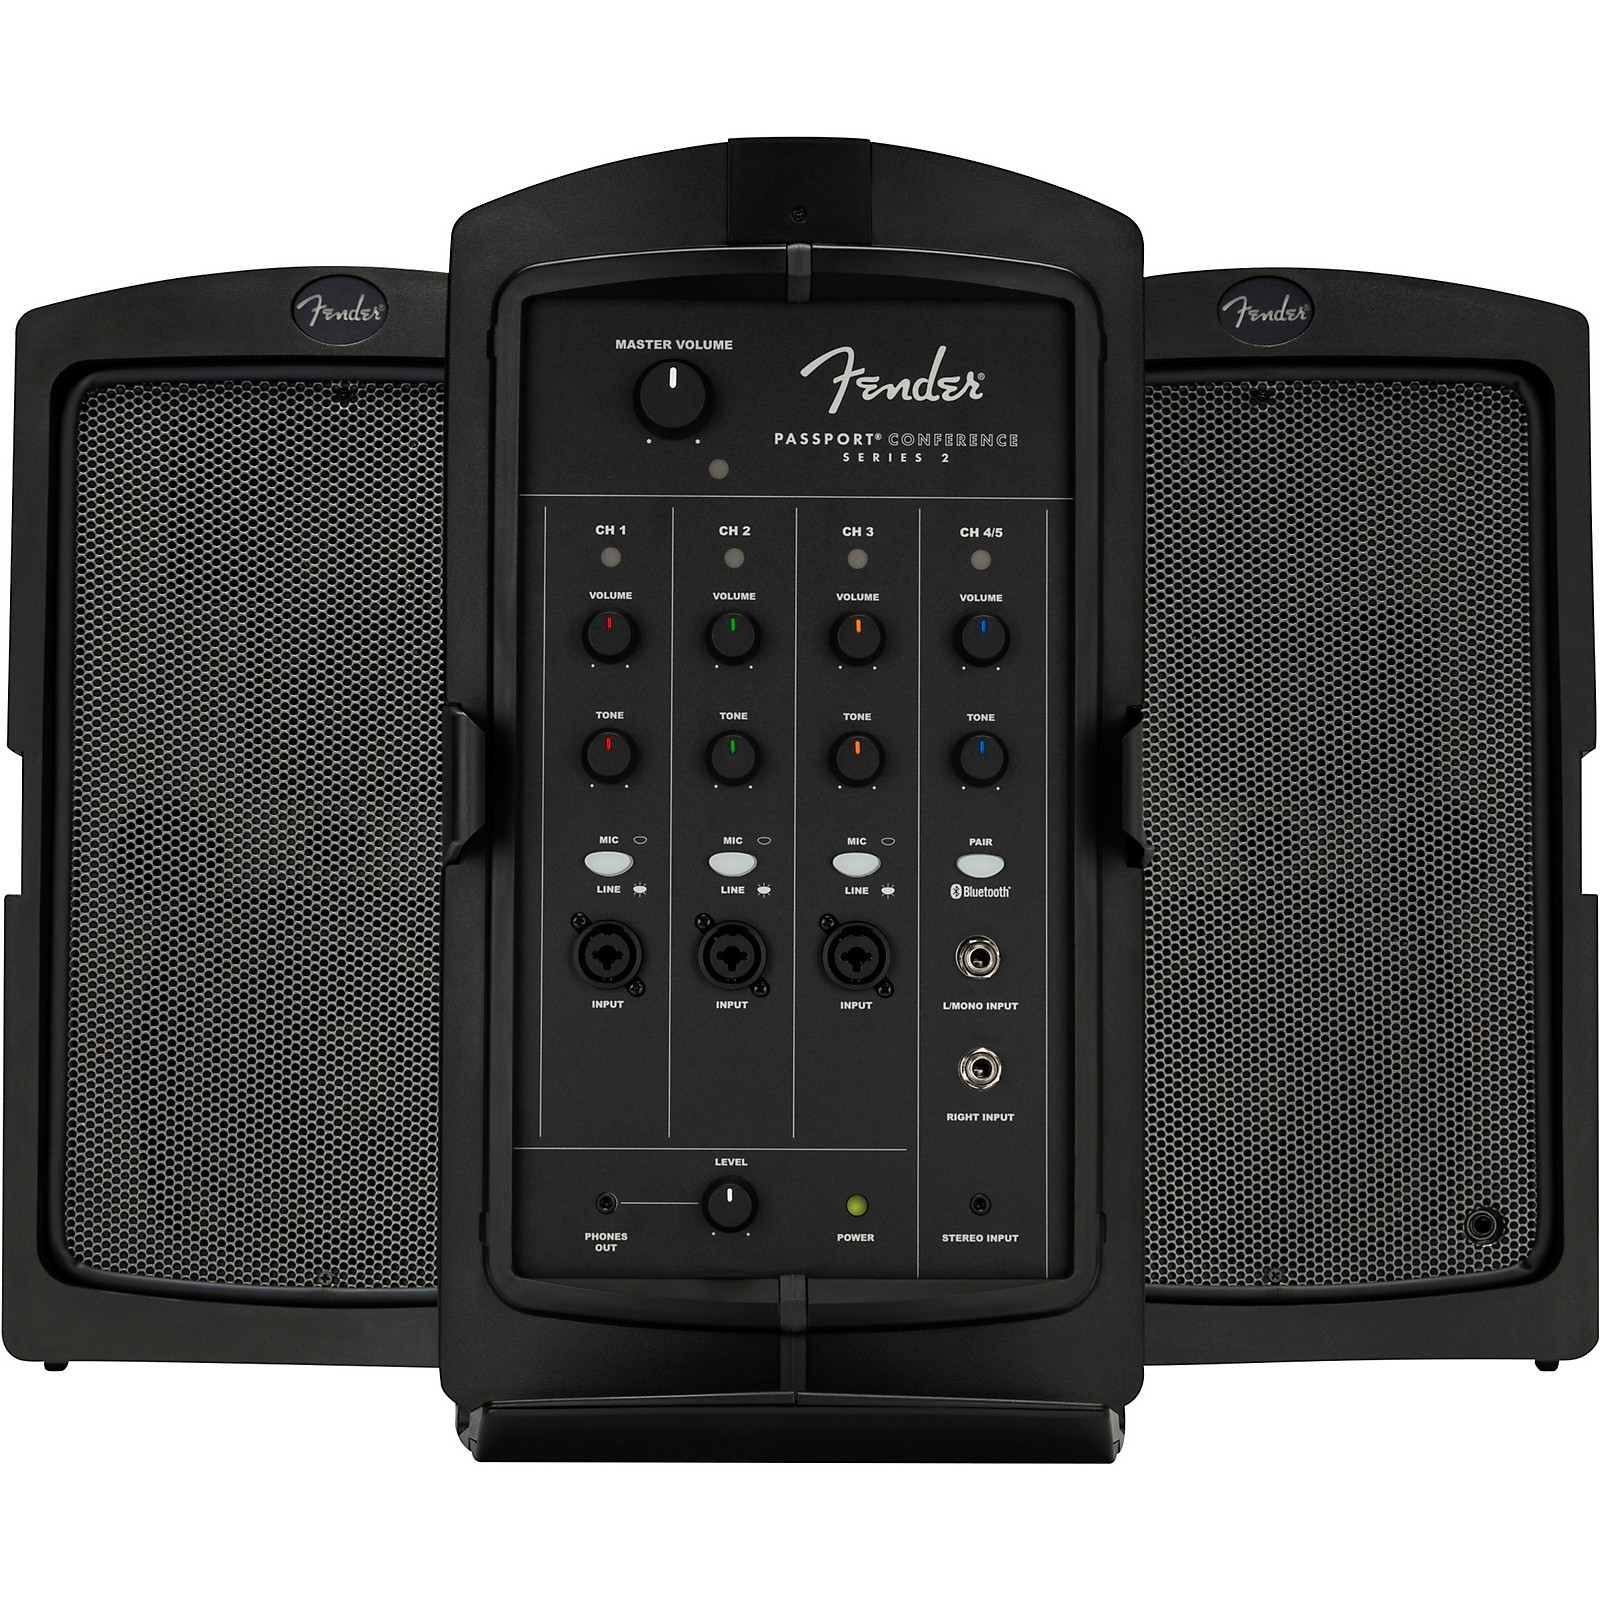 Fender Passport Conference Series 2 175W Powered PA System